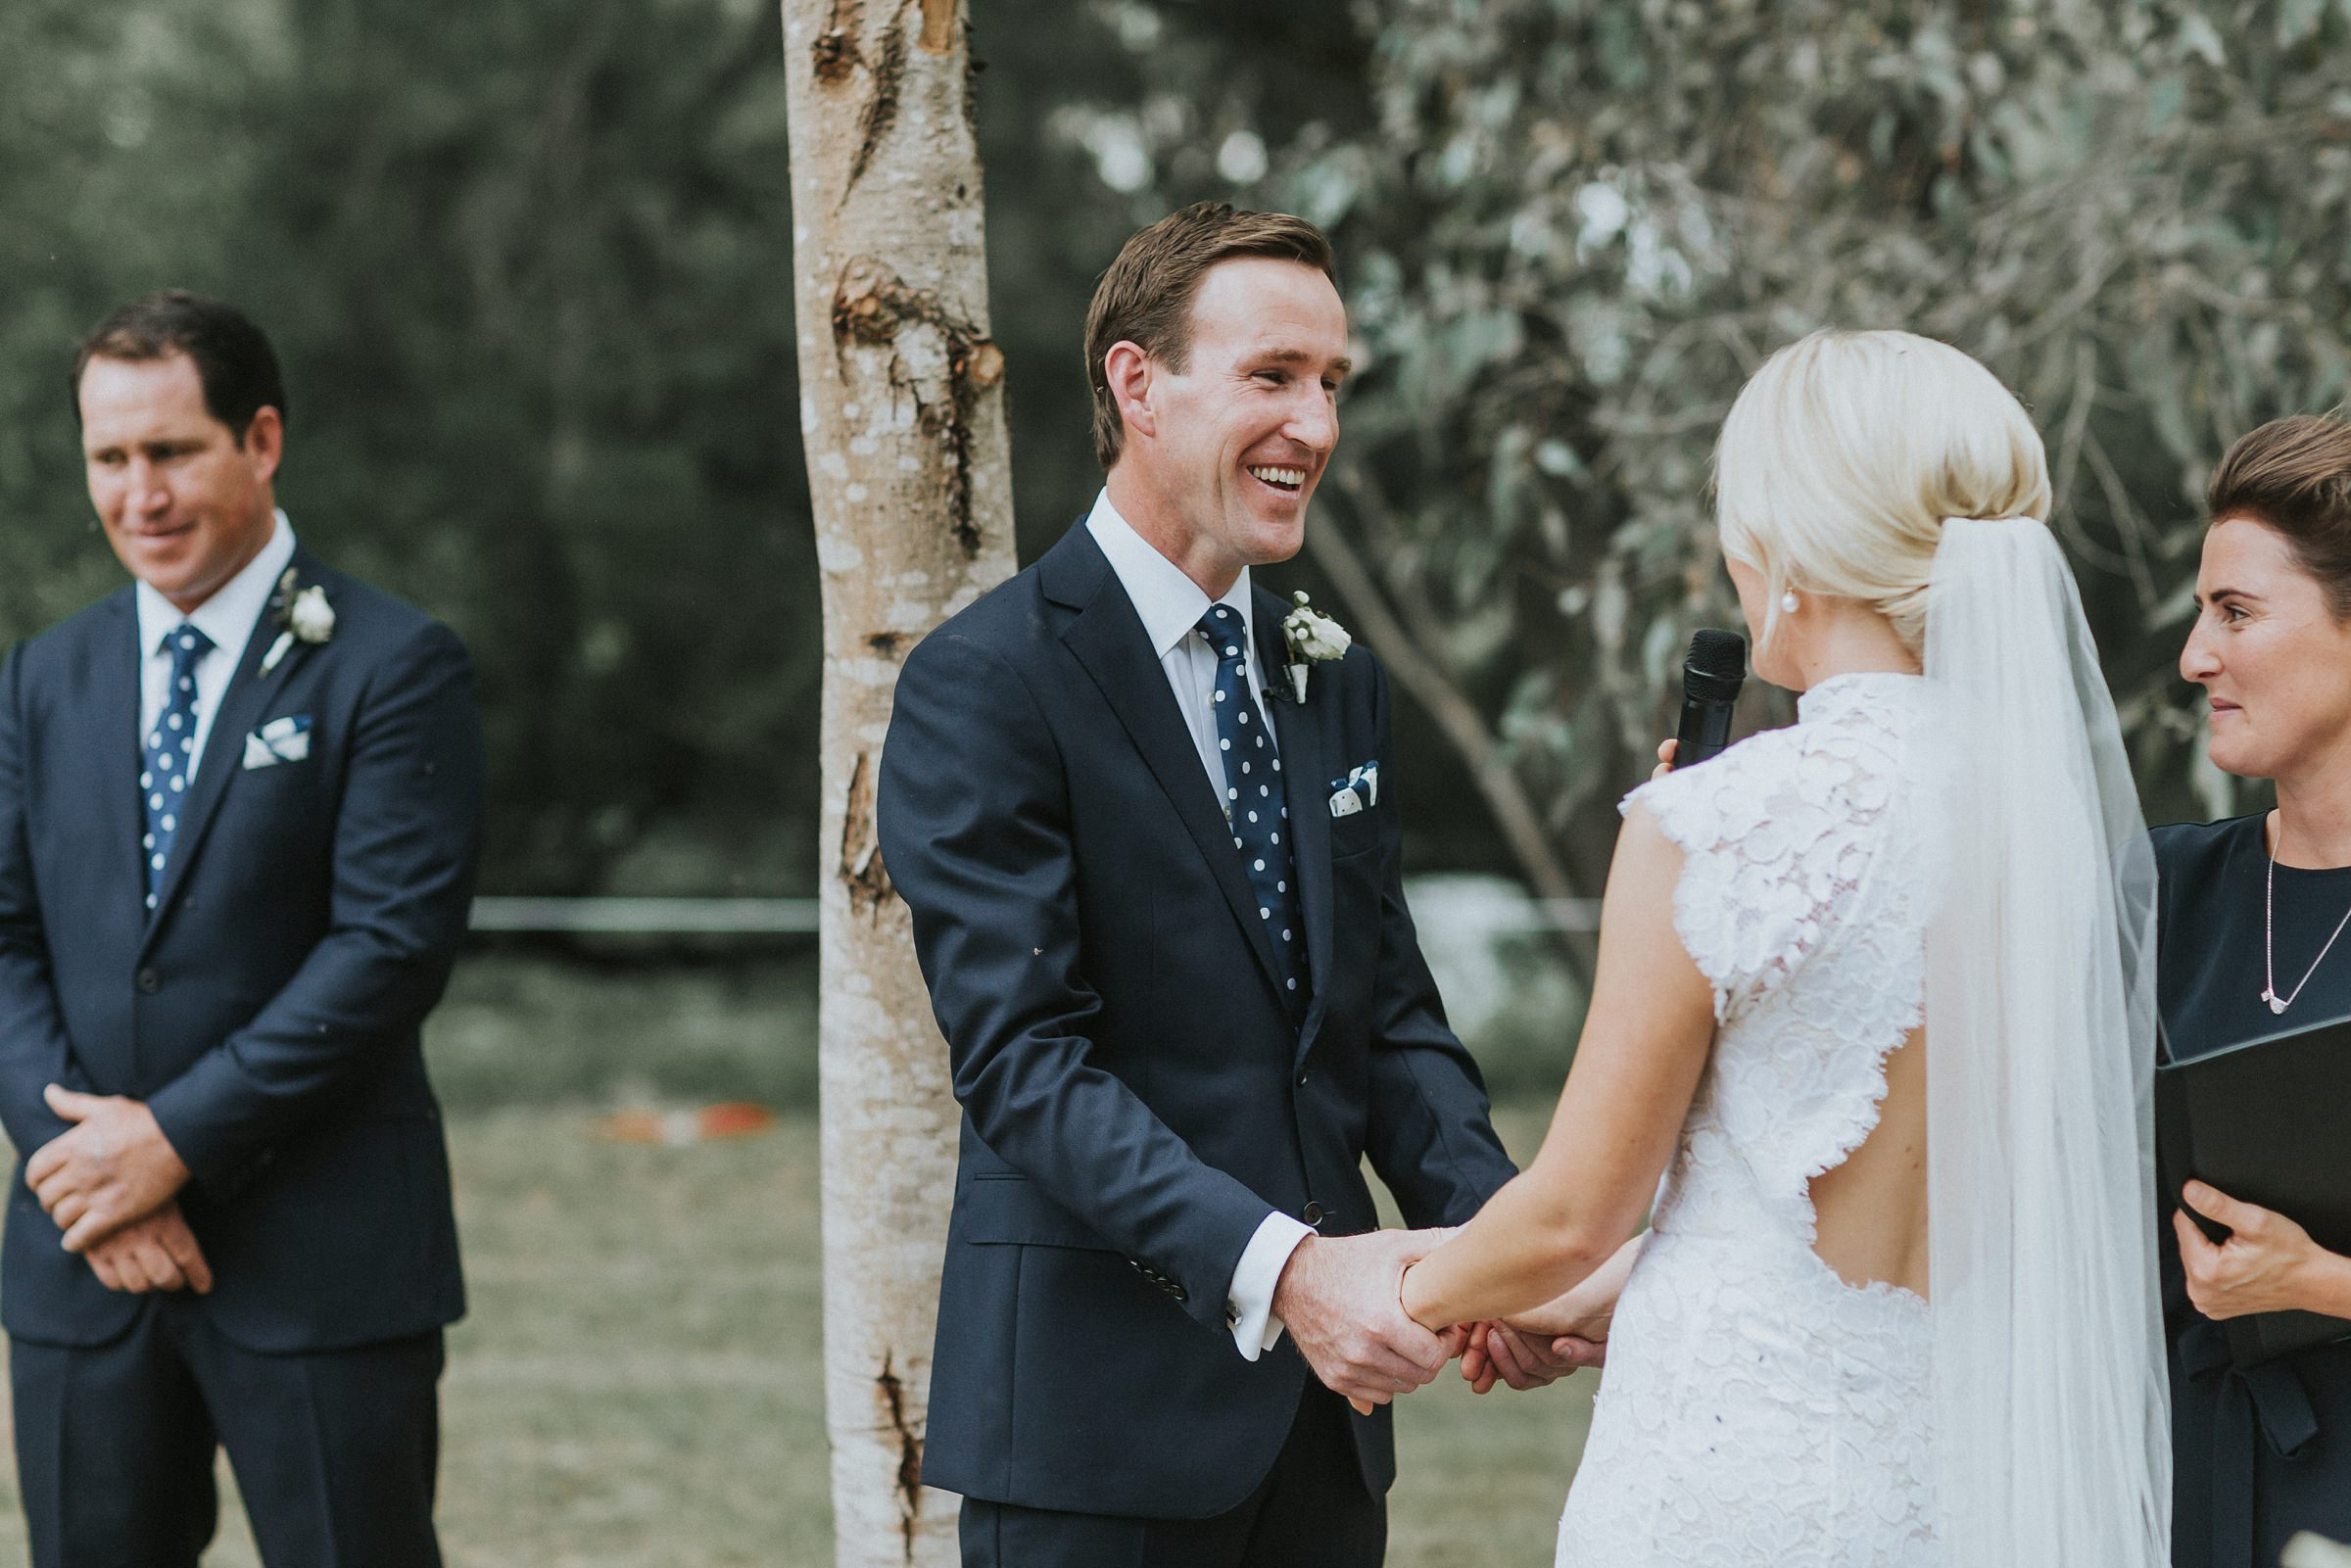 authentic emotion captured at nimbo fork lodge wedding